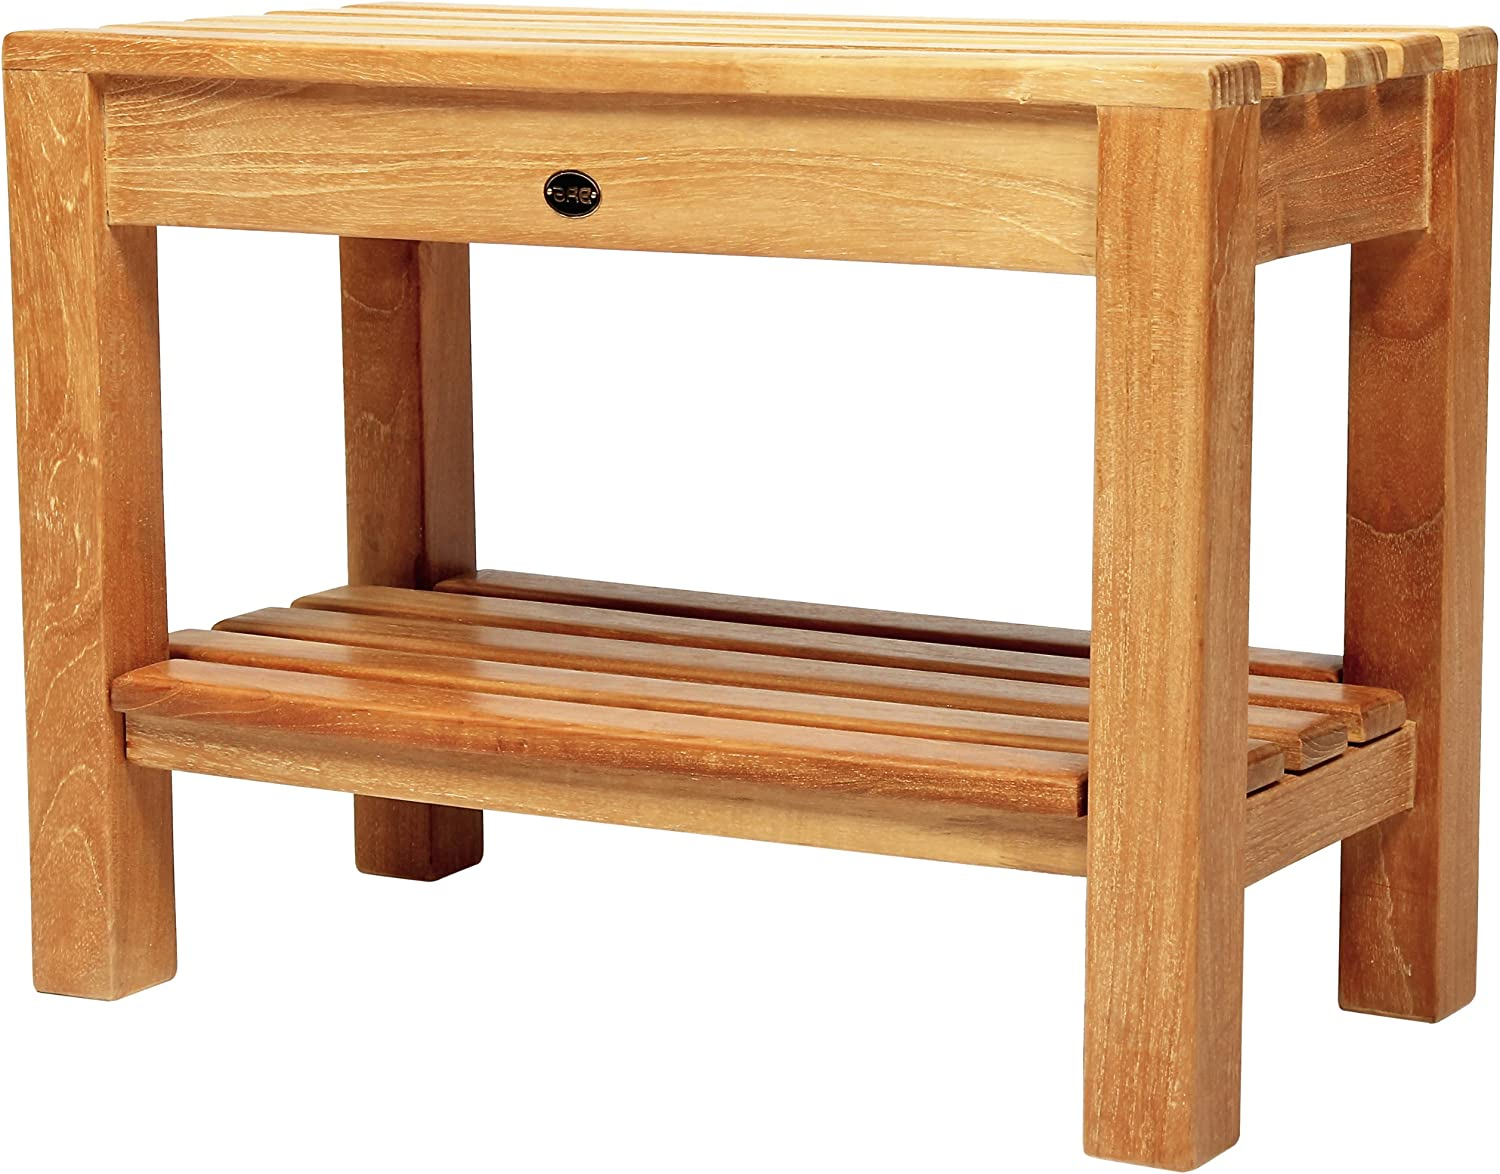 Arb Teak & Specialties Coach Teak Shower Bench with Shelf, 23.5 Inch 910ZDKciyRL